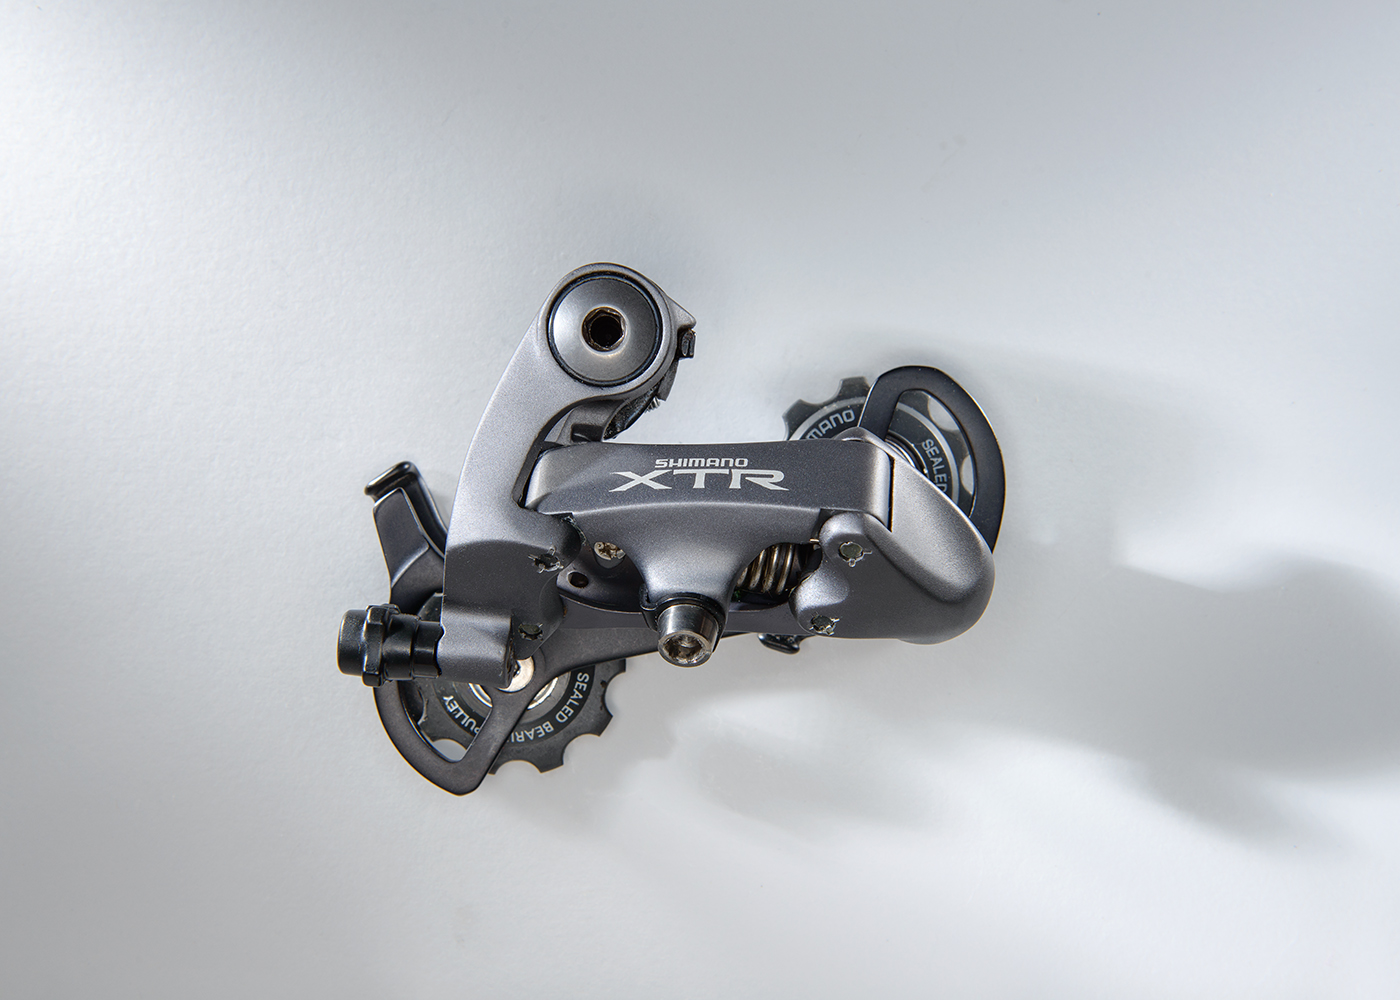 Shimano XTR M950  This is a 3rd generation model and was introduced in 1996